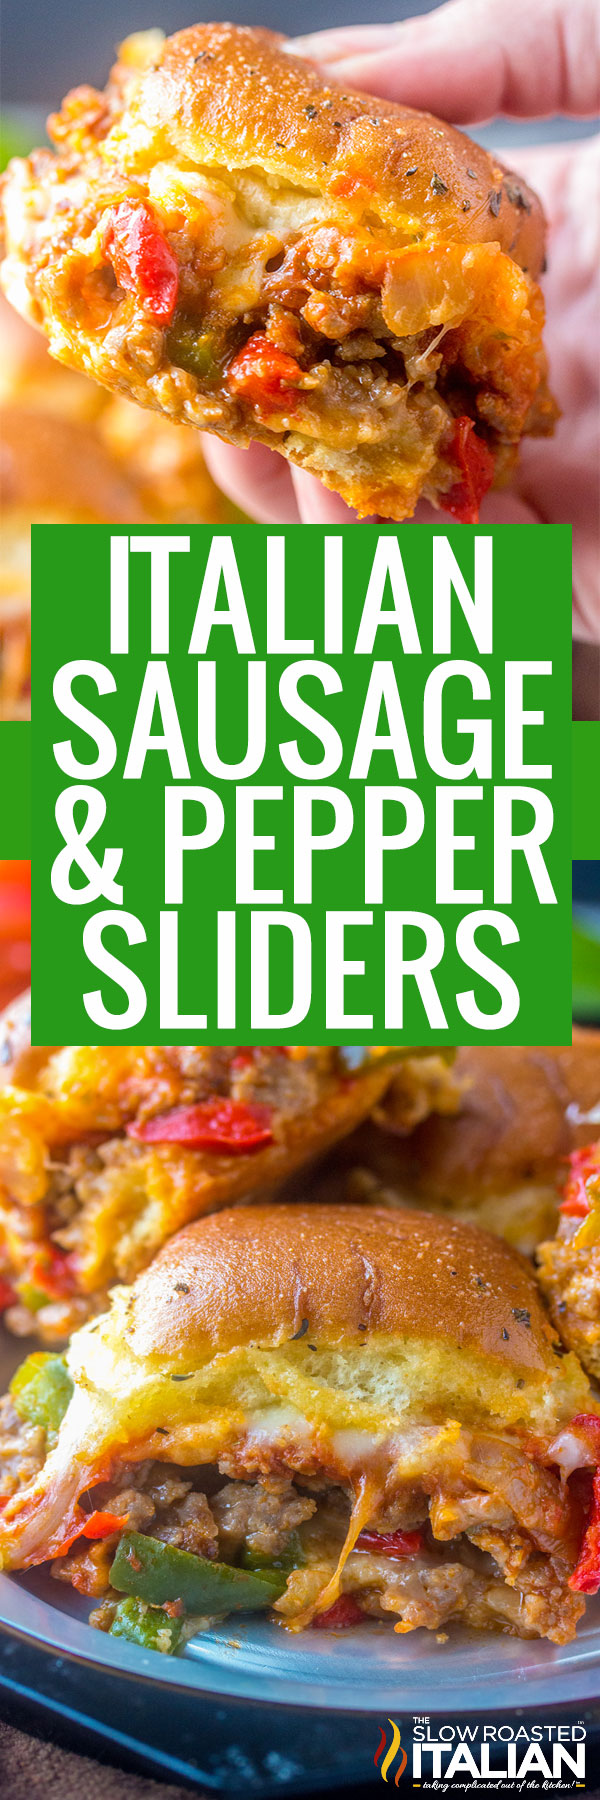 Italian Sliders (Sausage and Pepper) close up